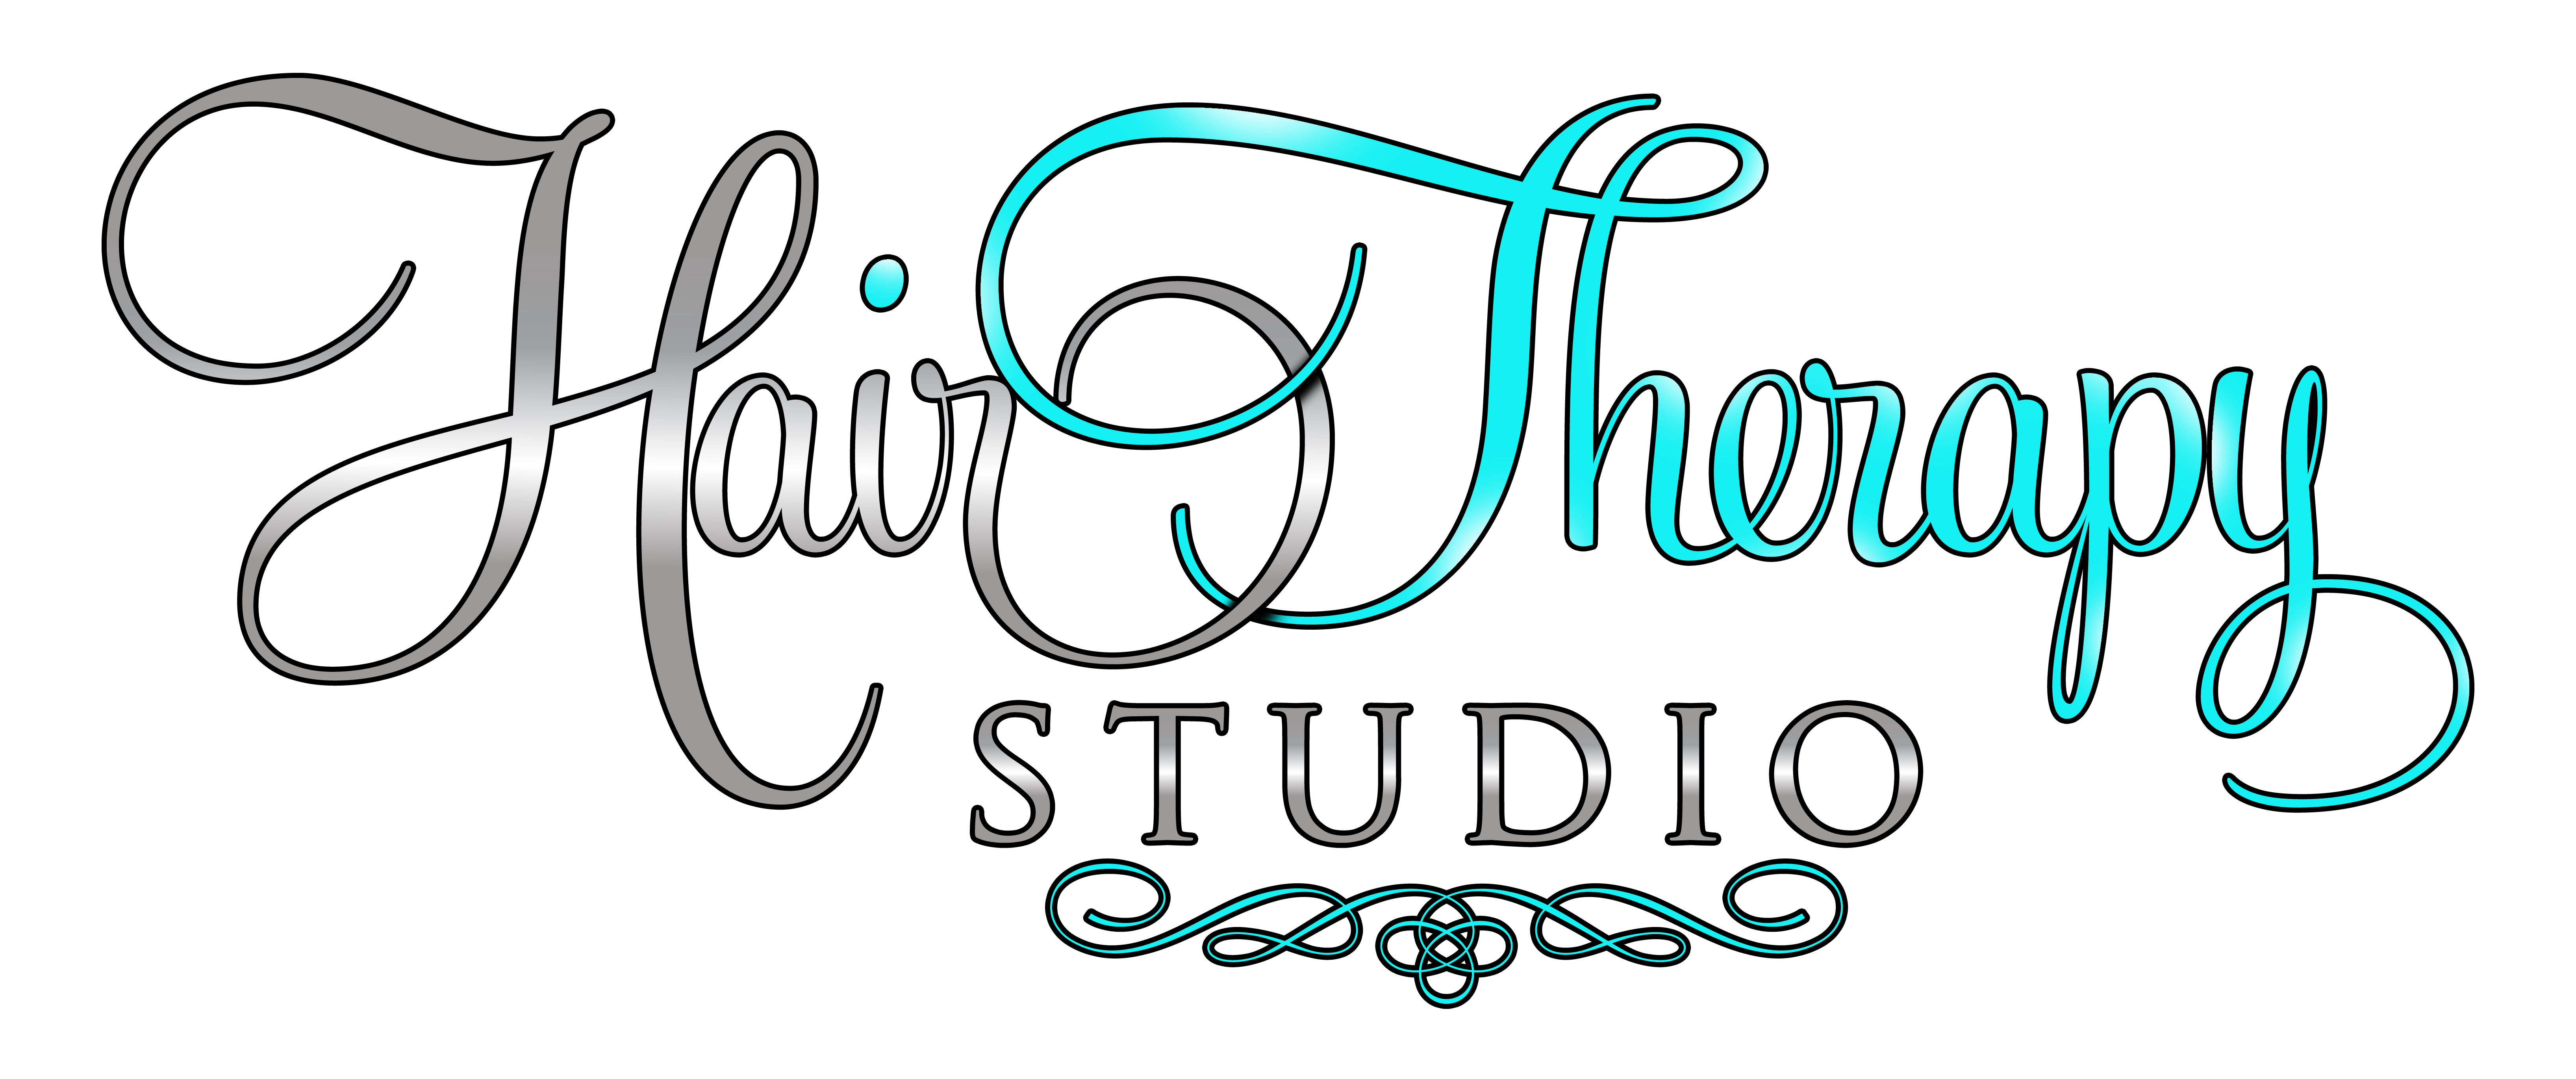 Hair Therapy Studio on transparent background